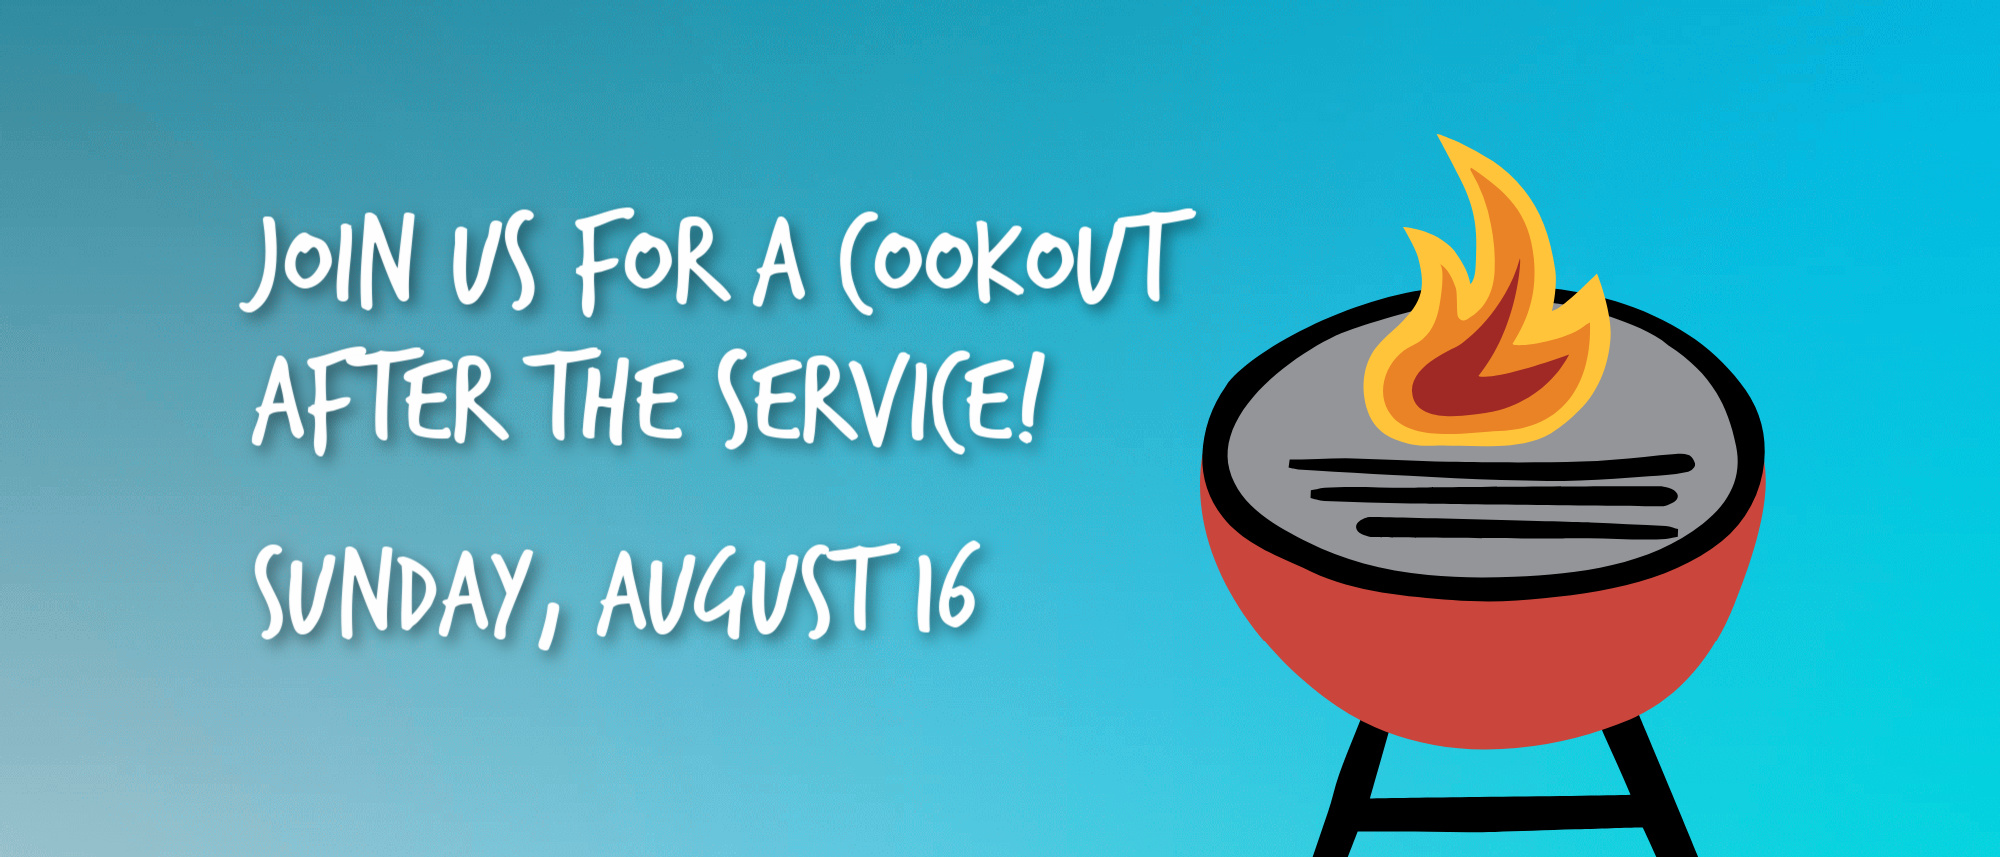 Join us for a cookout at Journey Church on August 16th right after the service!